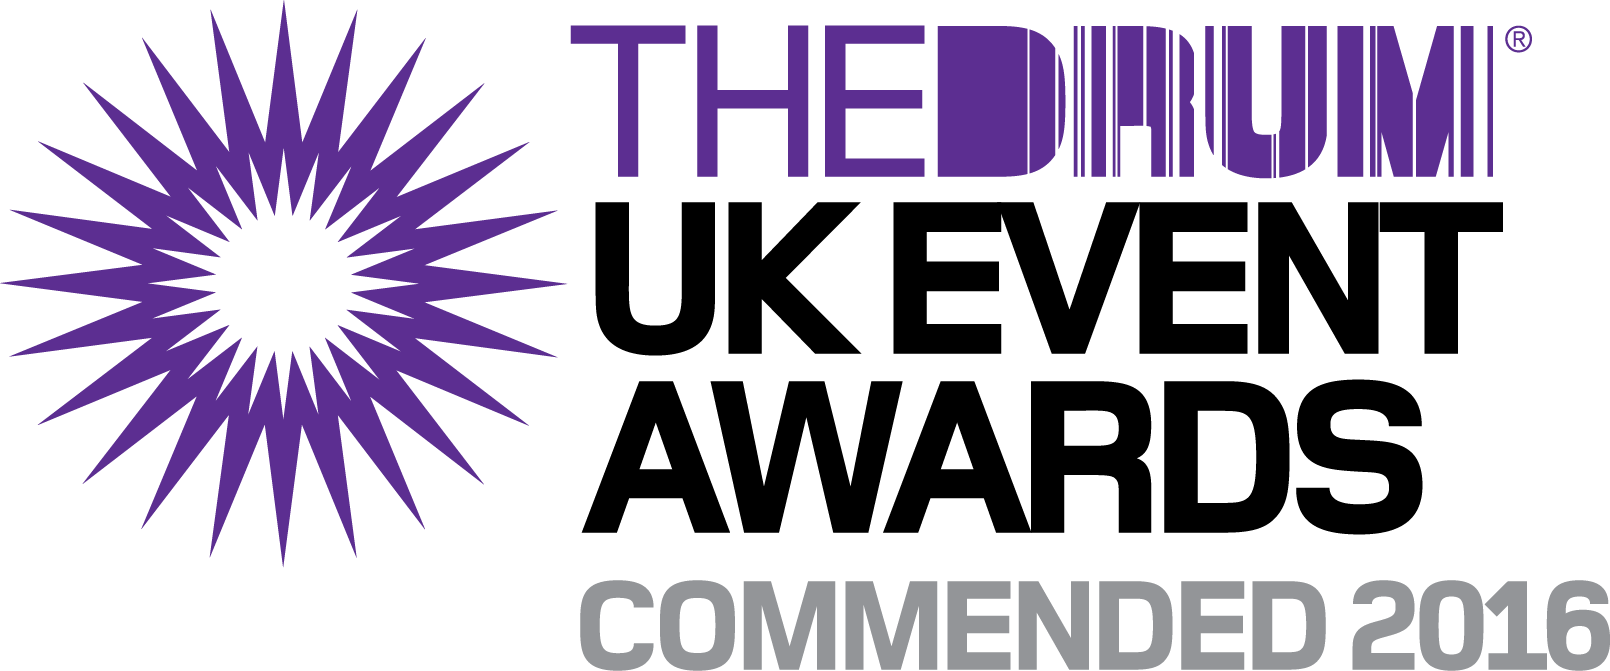 Commendation - Event Caterer of the Year 2016